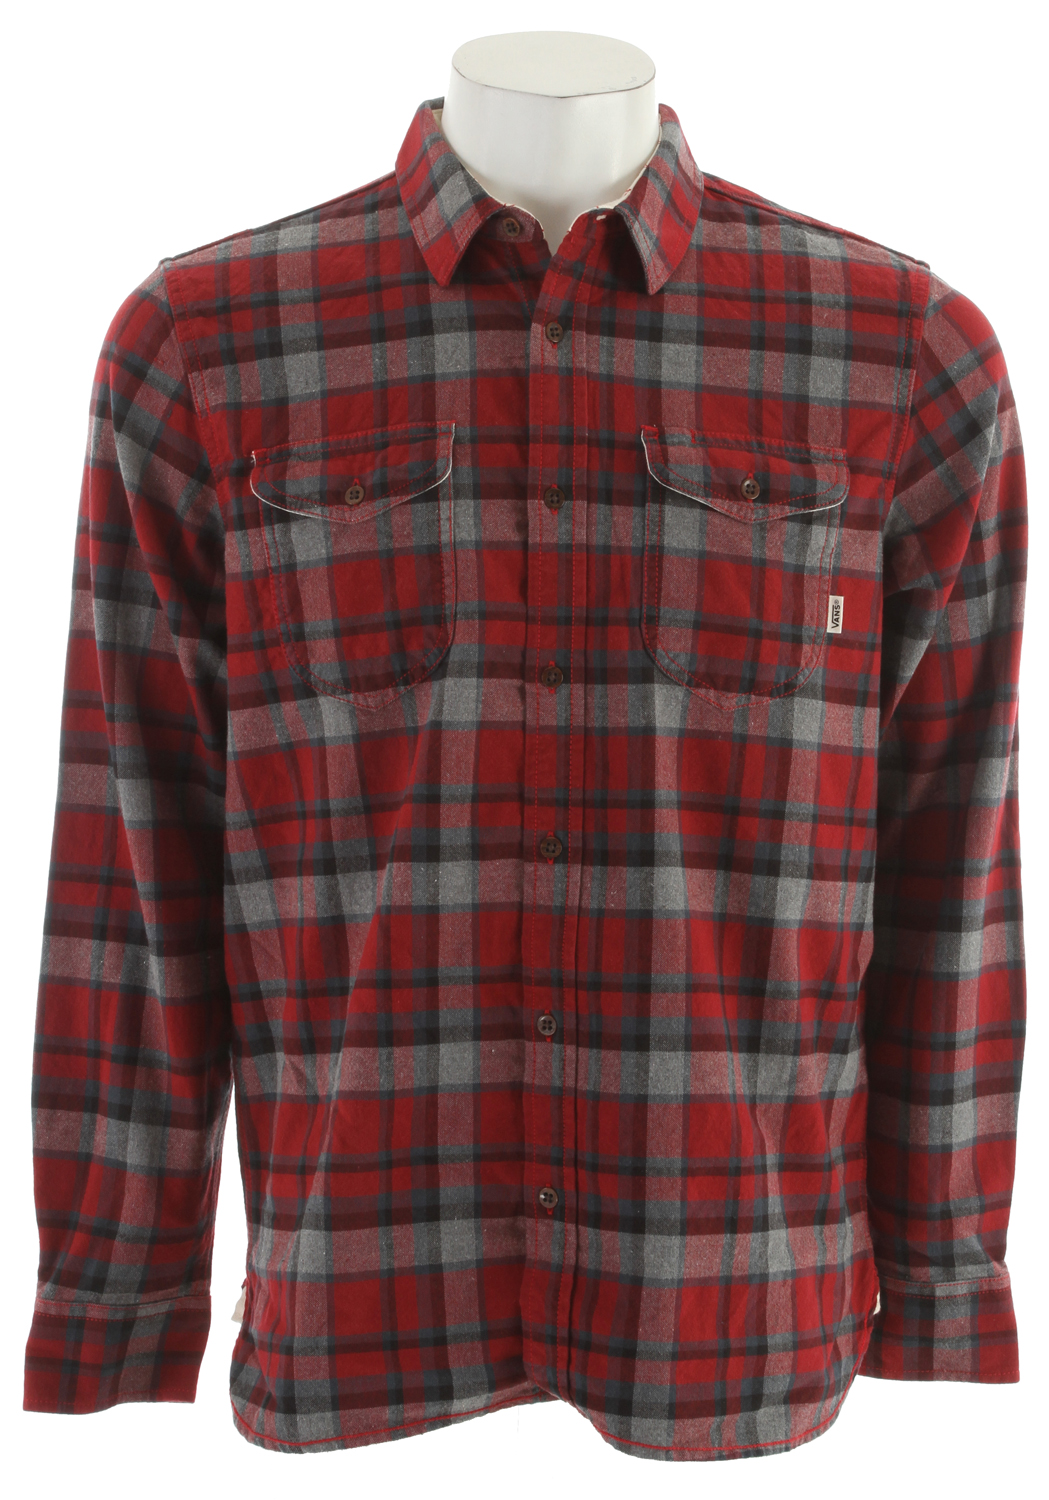 Skateboard Key Features of the Vans Avert Shirt: 100% Cotton long sleeve canvas weave plaid woven Japanese workwear-inspired double front chest pockets with Vans flag label Scallop hem with twill detail at side seam, inside back yoke, and collar stand Vans patch label inside placket One-piece self bias patch sewn over back yoke Enzyme Wash Classic Fit - $37.95